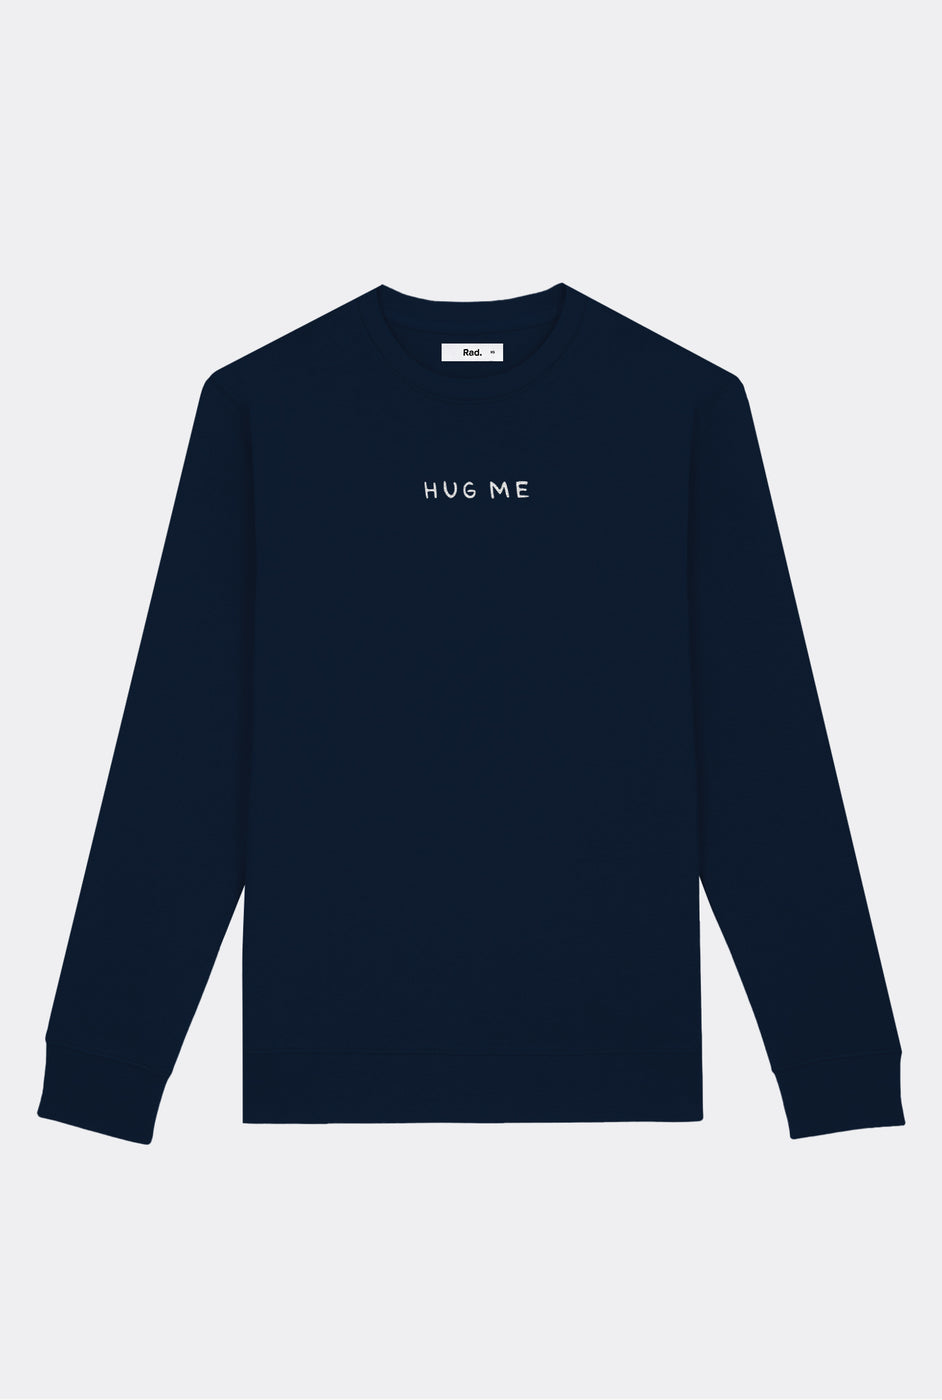 Crewneck Hug Me - Embroidered